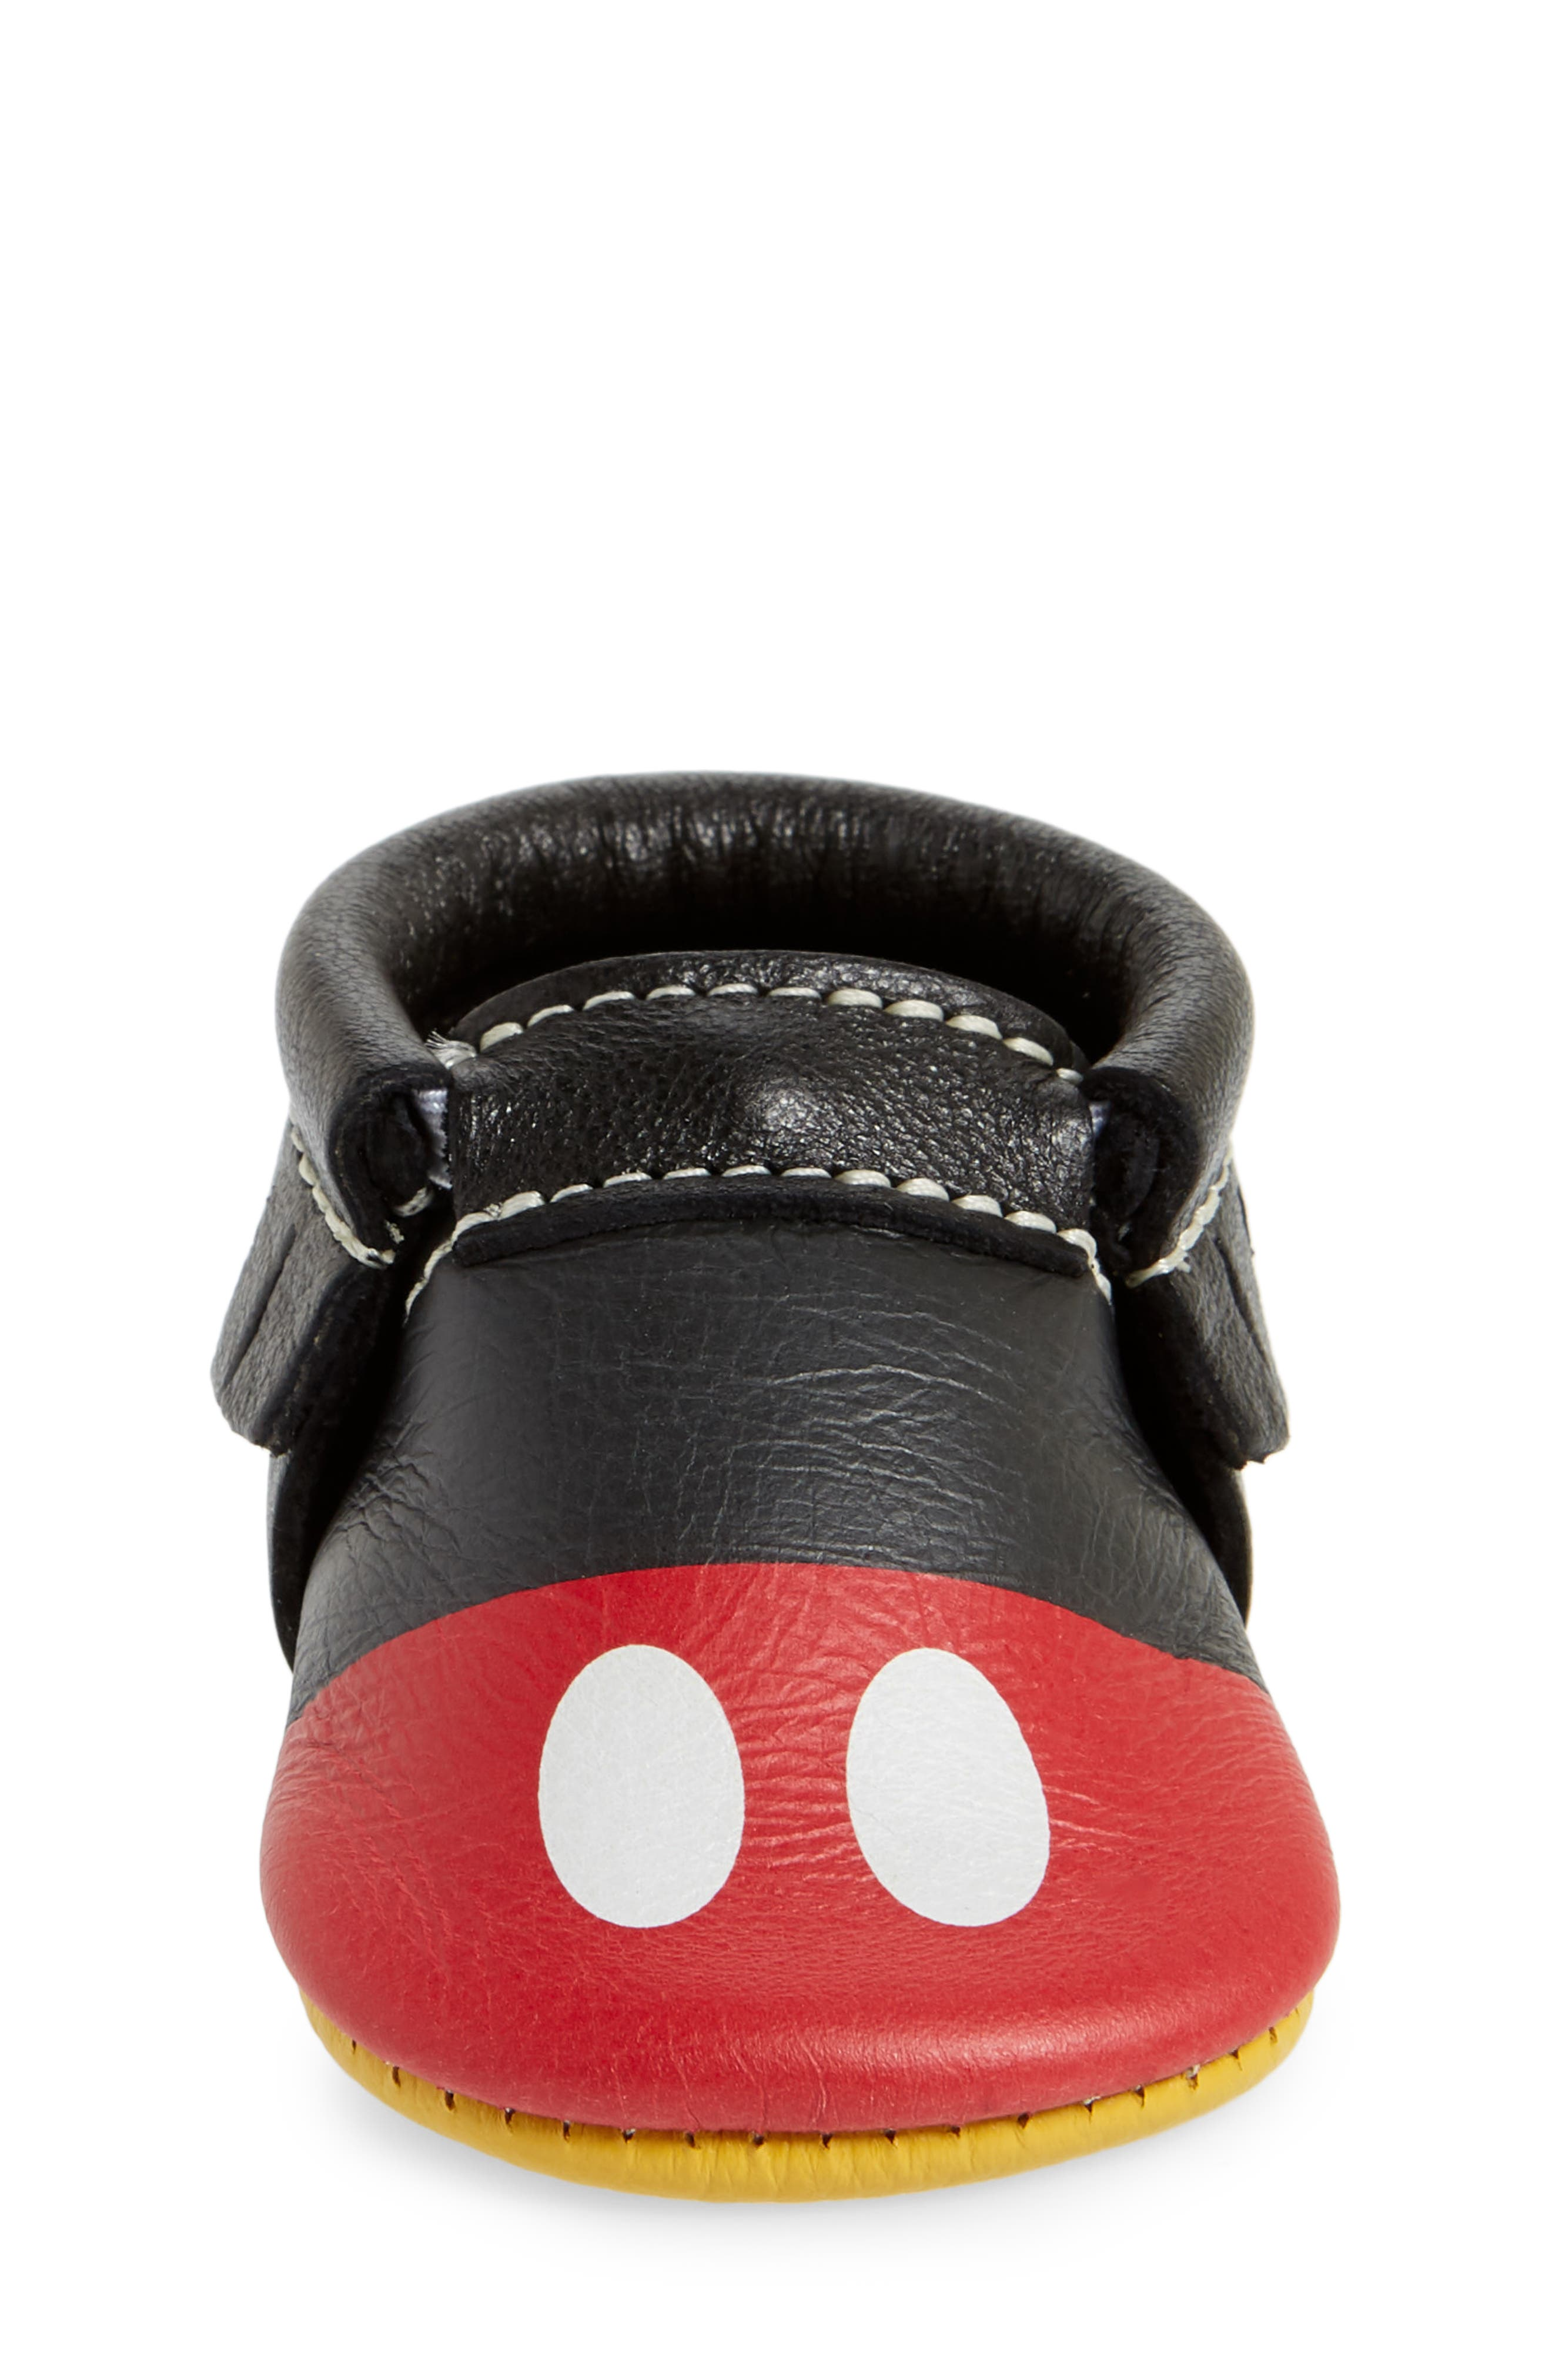 x Disney<sup>®</sup> Baby Mickey Mousee Crib Moccasin,                             Alternate thumbnail 4, color,                             001